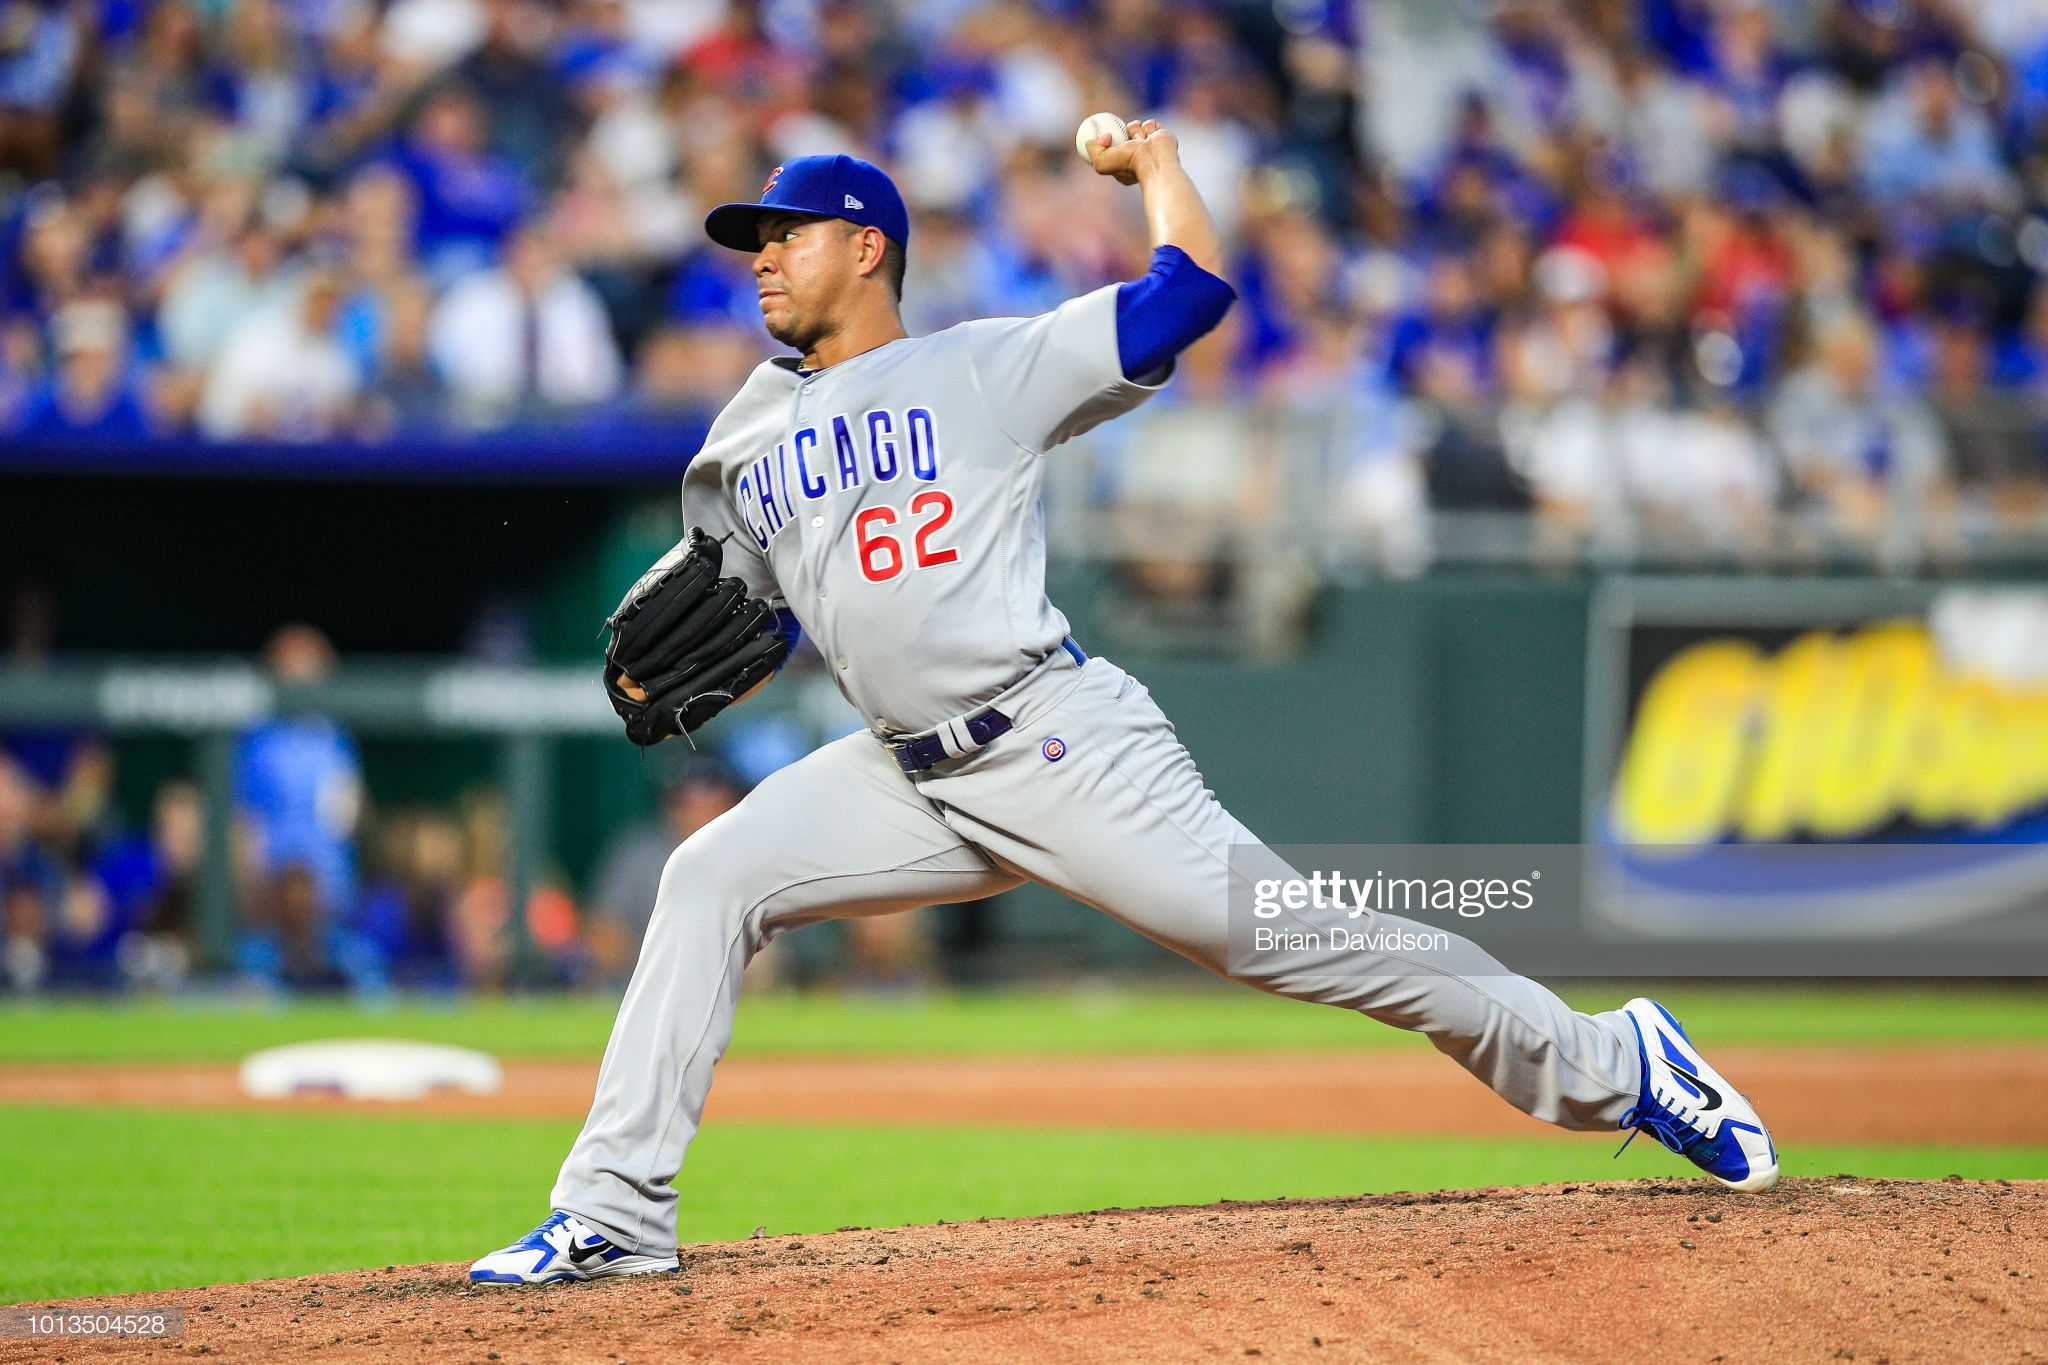 KANSAS CITY, MO - AUGUST 8: Jose Quintana #62 of the Chicago Cubs pitches against the Kansas City Royals during the third inning at Kauffman Stadium on August 8, 2018 in Kansas City, Missouri. (Photo by Brian Davidson/Getty Images)